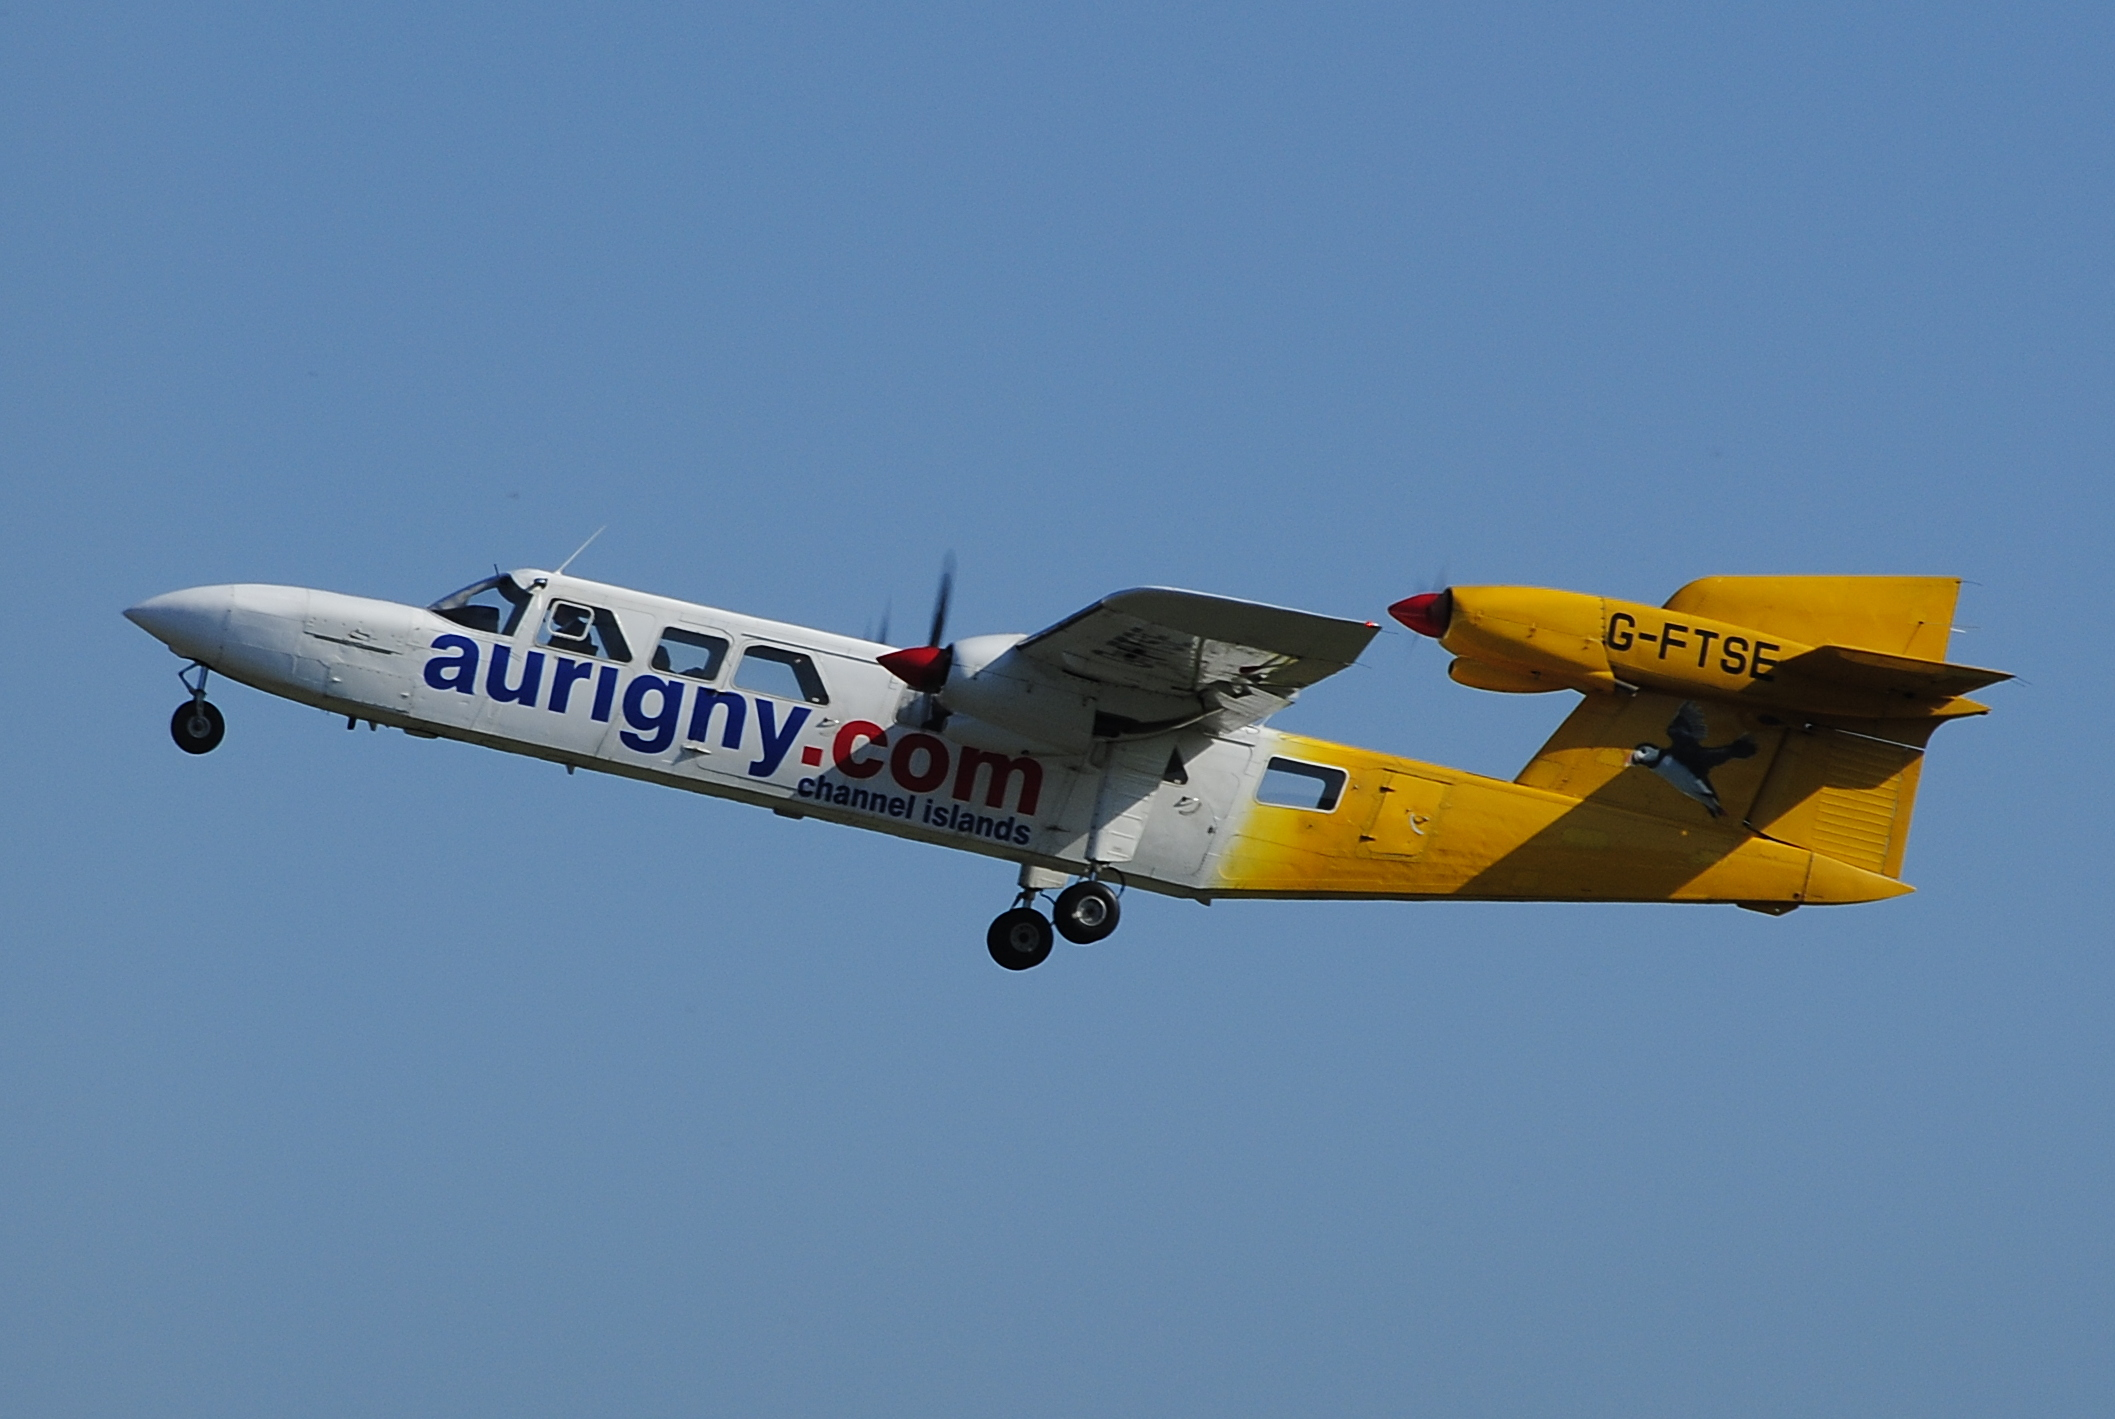 G-FTSE Trislander of Aurigny Air Services. Photo taken on March 21, 2012. Used under the Creative Commons Attribution-Share Alike 2.0 Generic license.